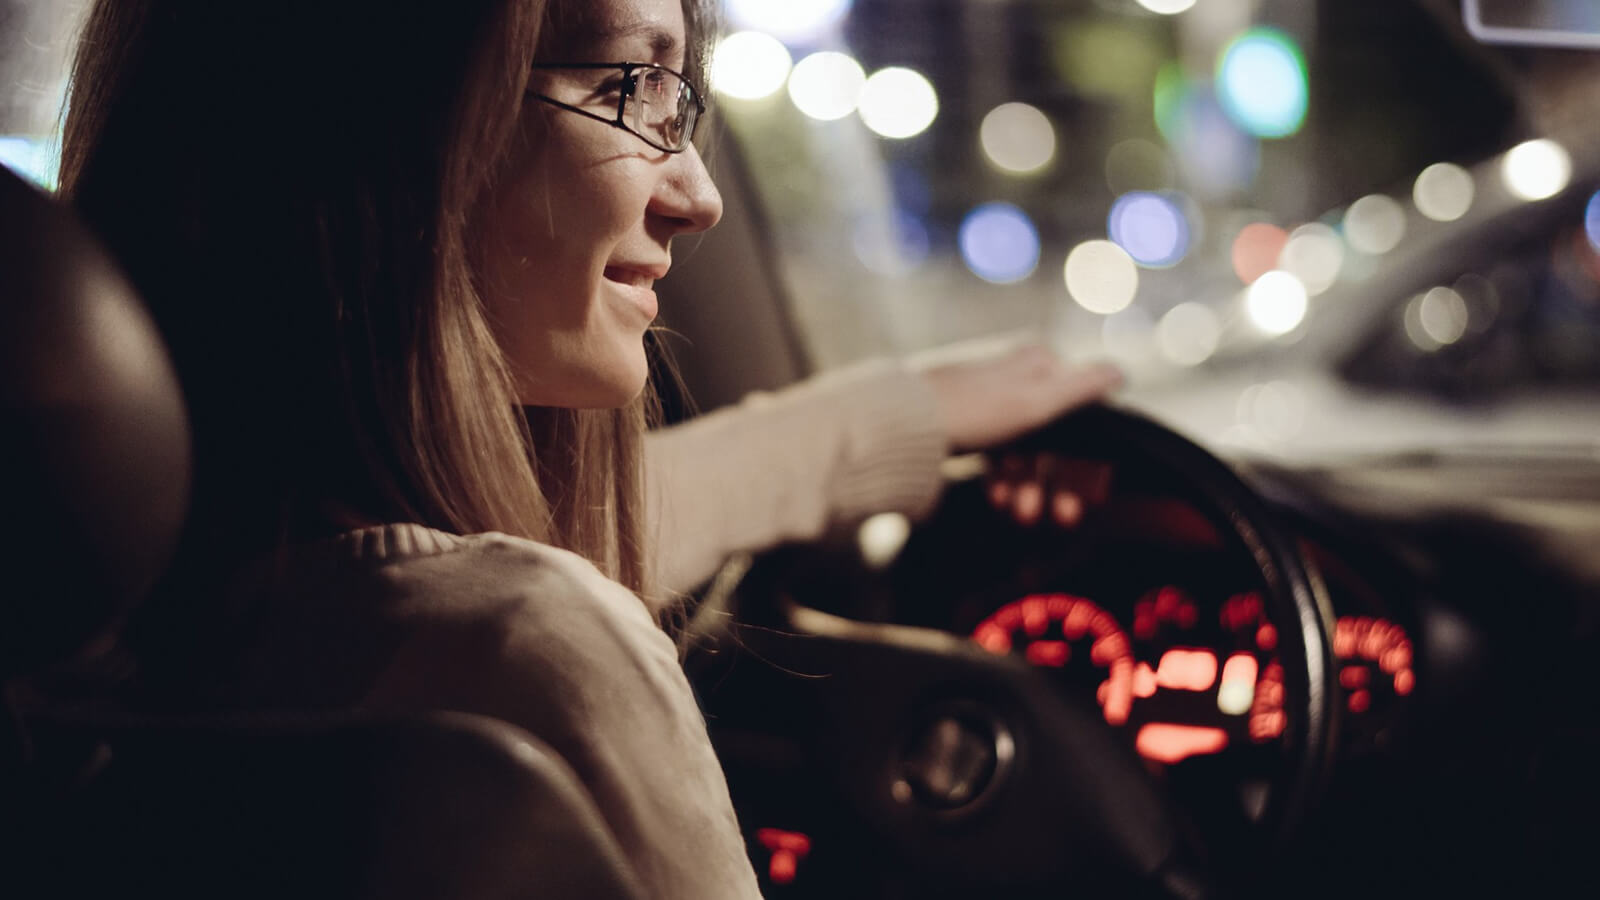 Night Driving Glasses Are Helpful: Fact or Fad?